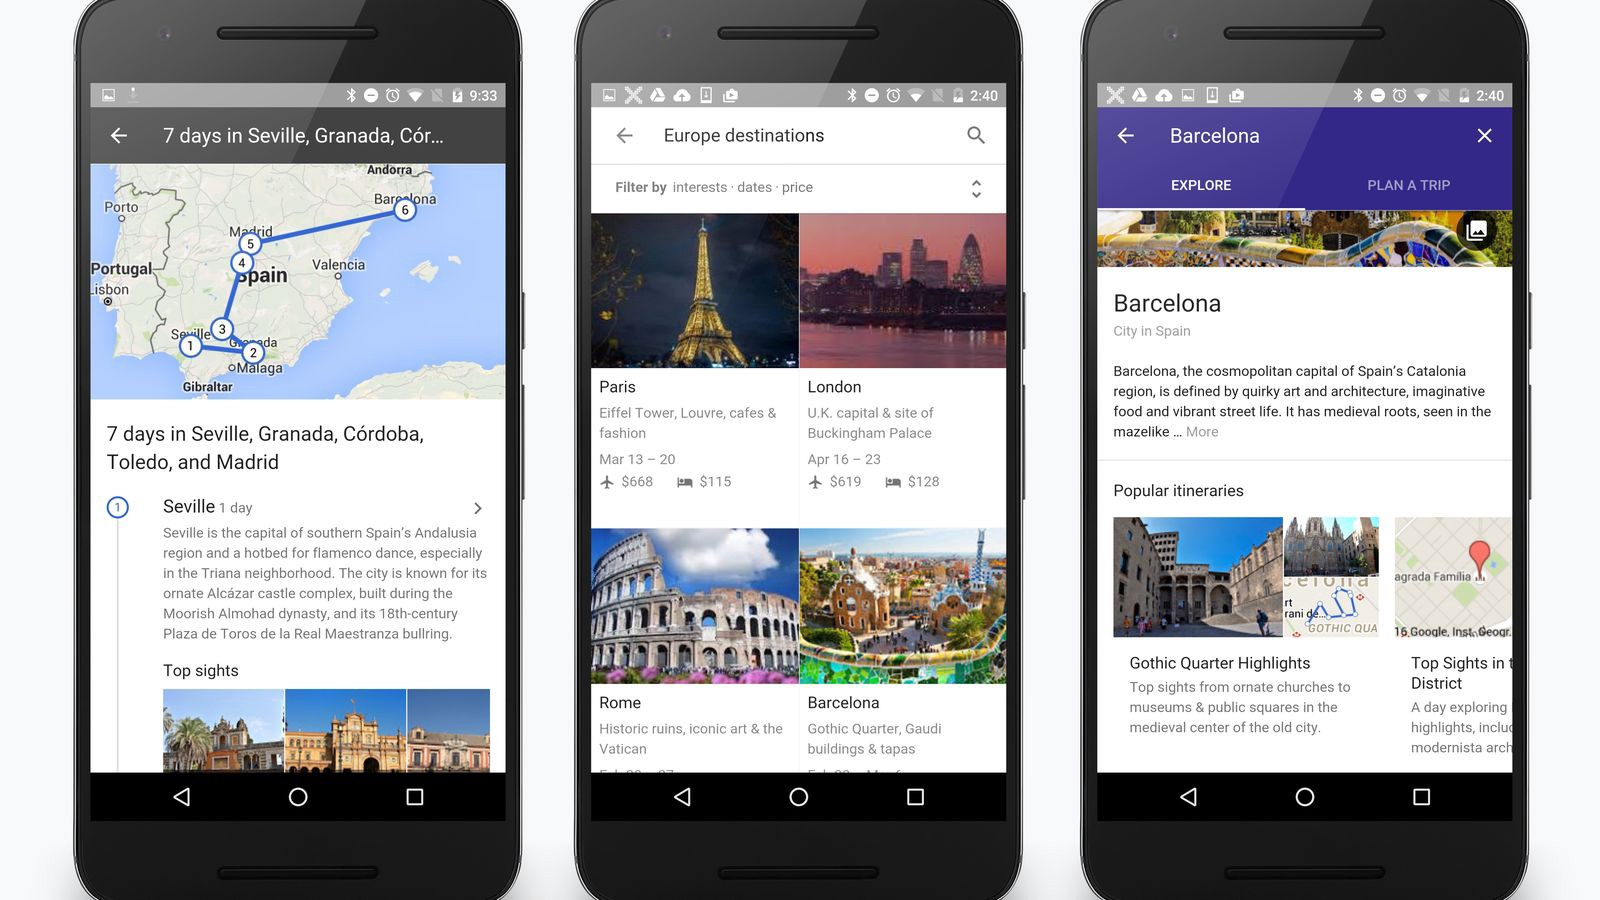 Google's Travel Destinations Search Image from theverve.com